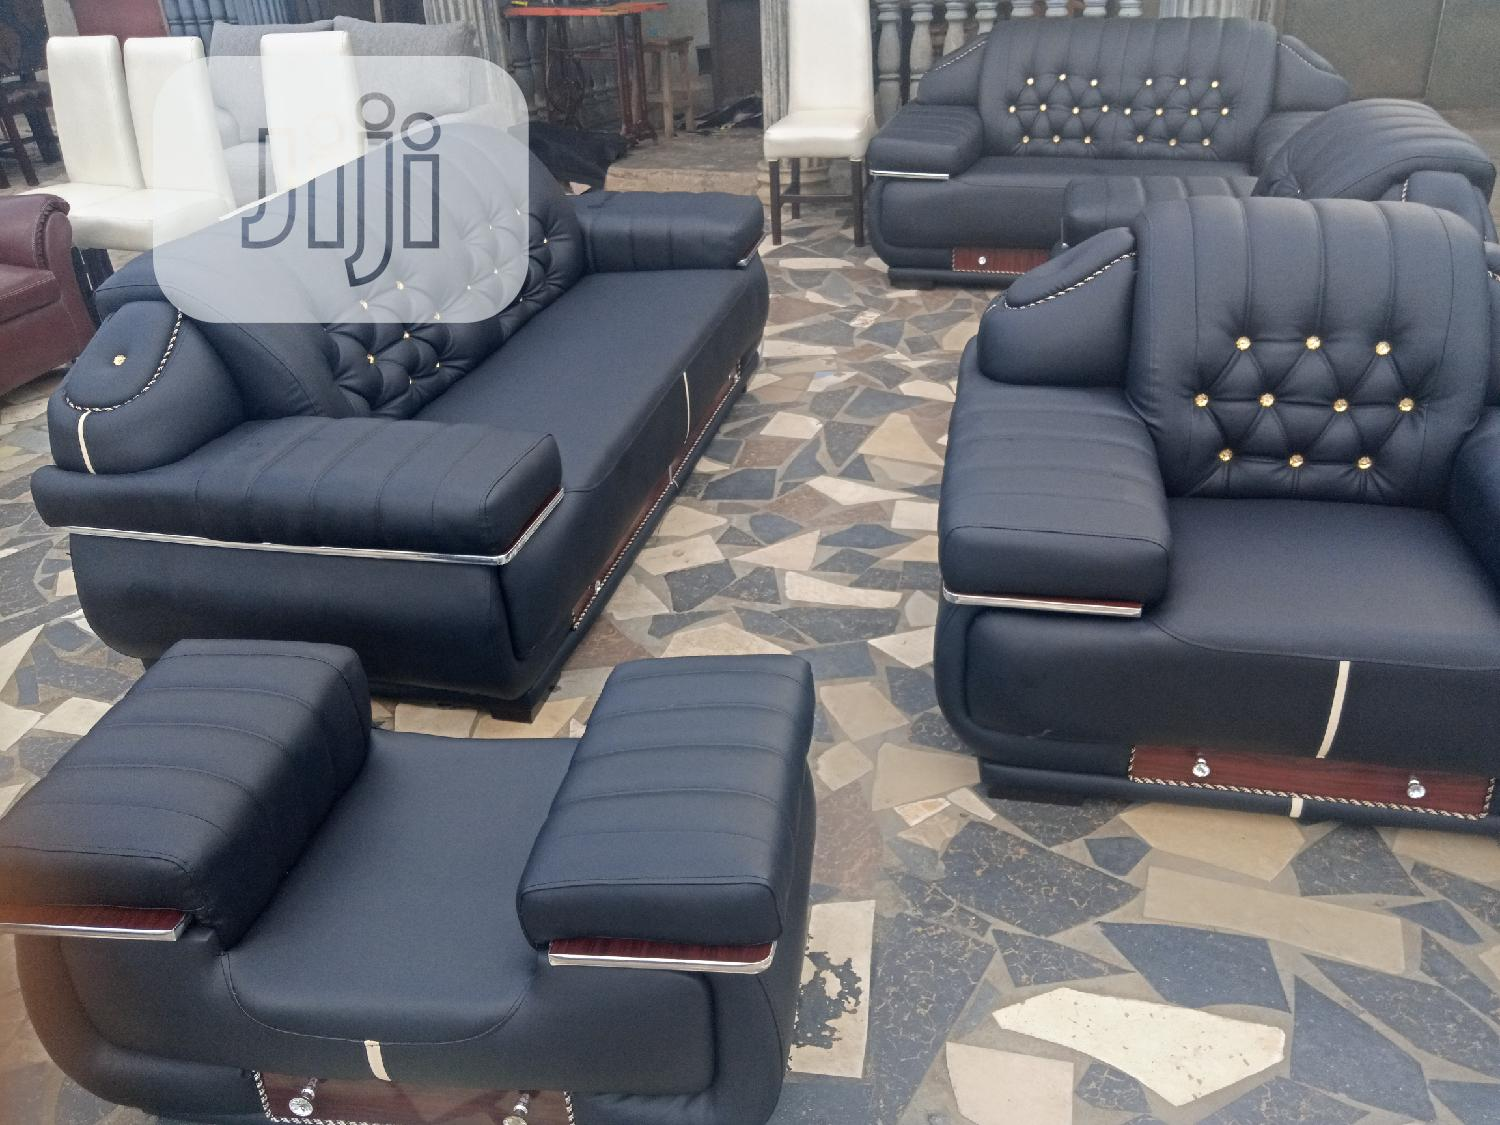 7 Seater Beautifully Designed High Quality and Durable Sofa / Chairs